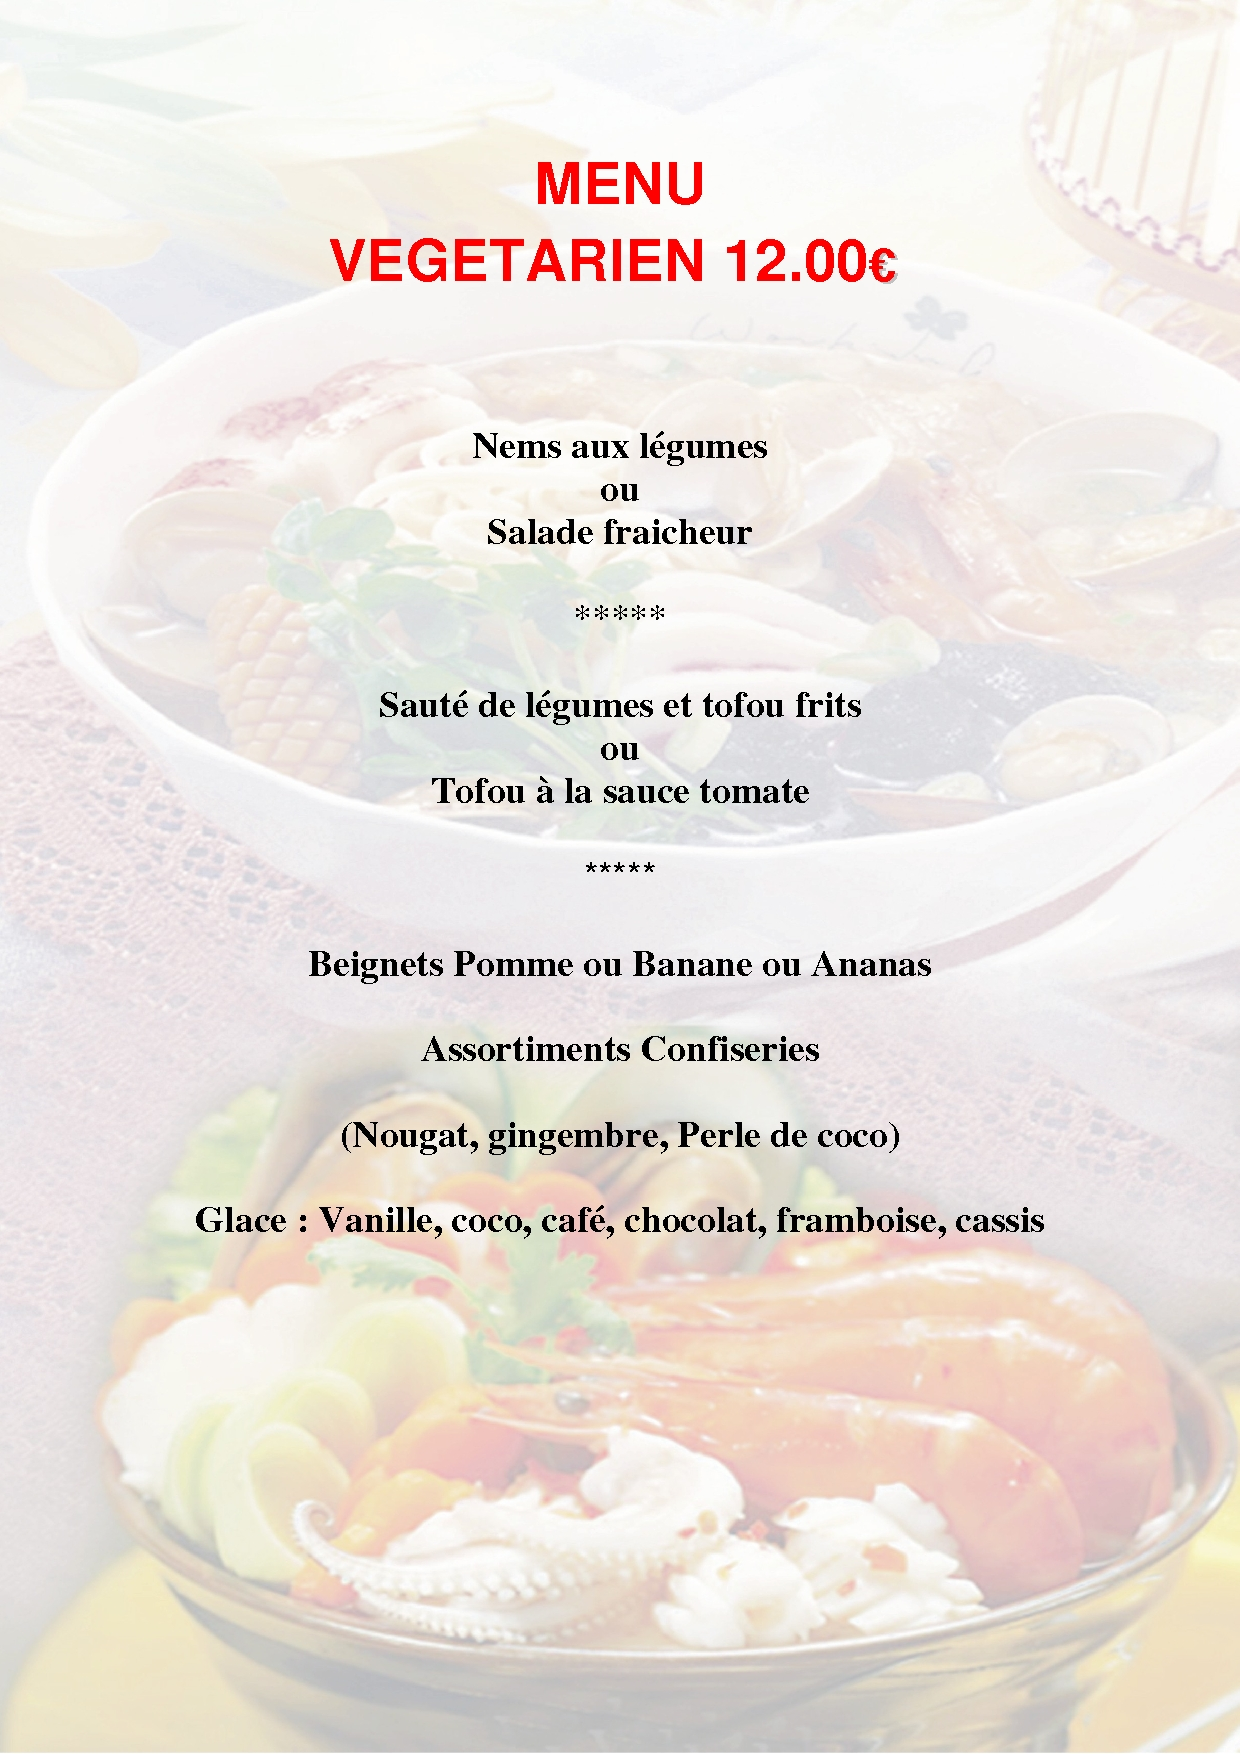 Menu vegetarien 12